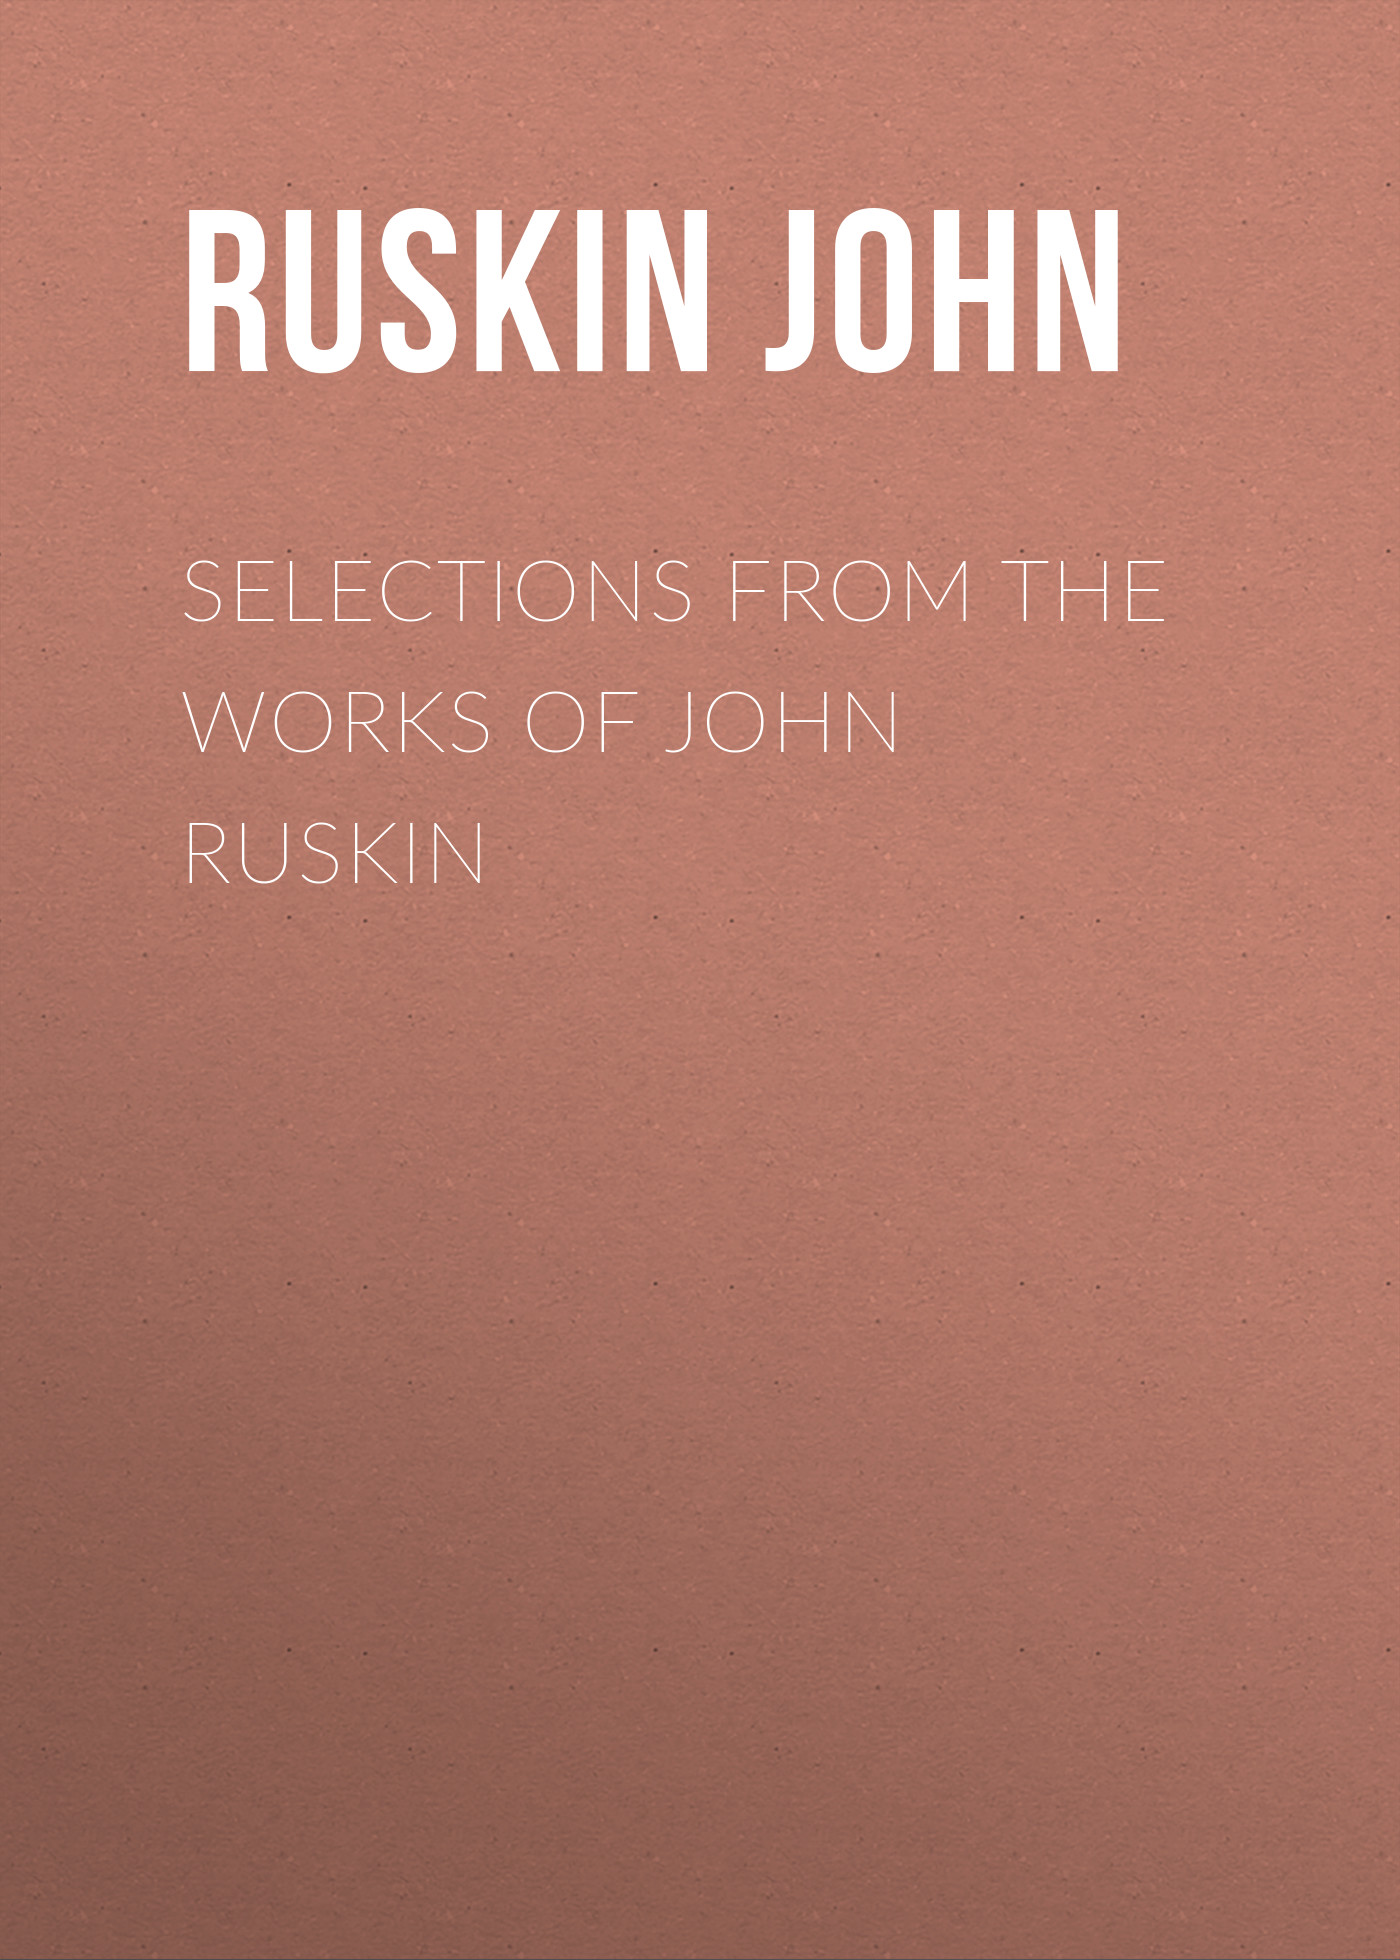 купить Ruskin John Selections From the Works of John Ruskin по цене 0 рублей